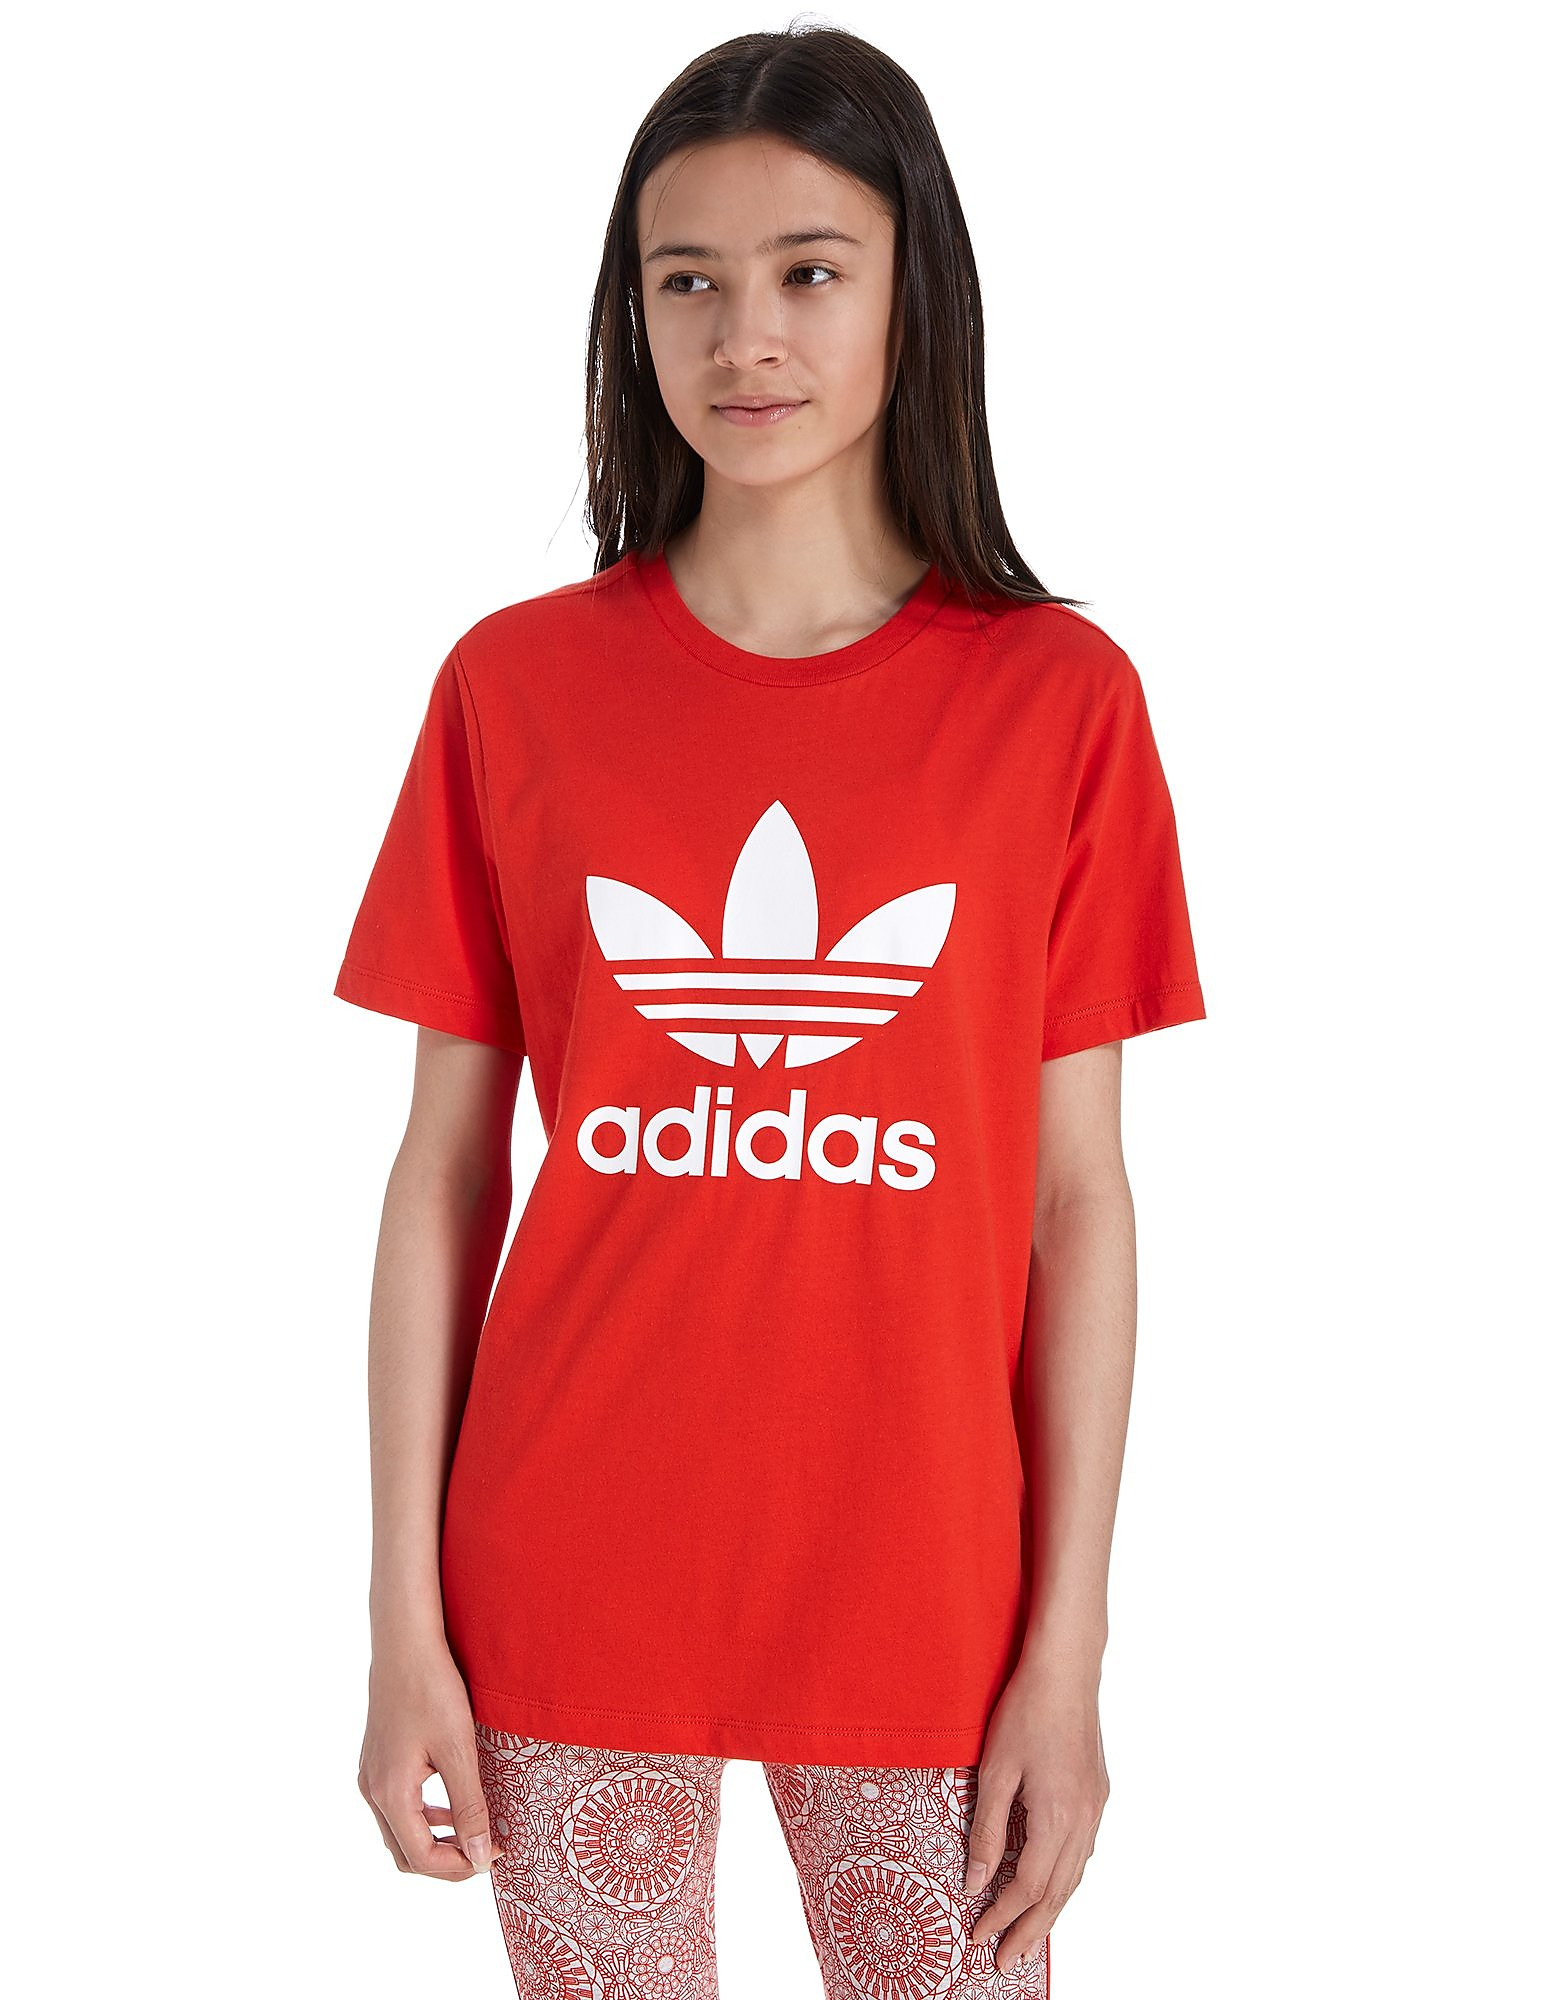 adidas Originals Girls' Trefoil Boyfriend T-Shirt Junior